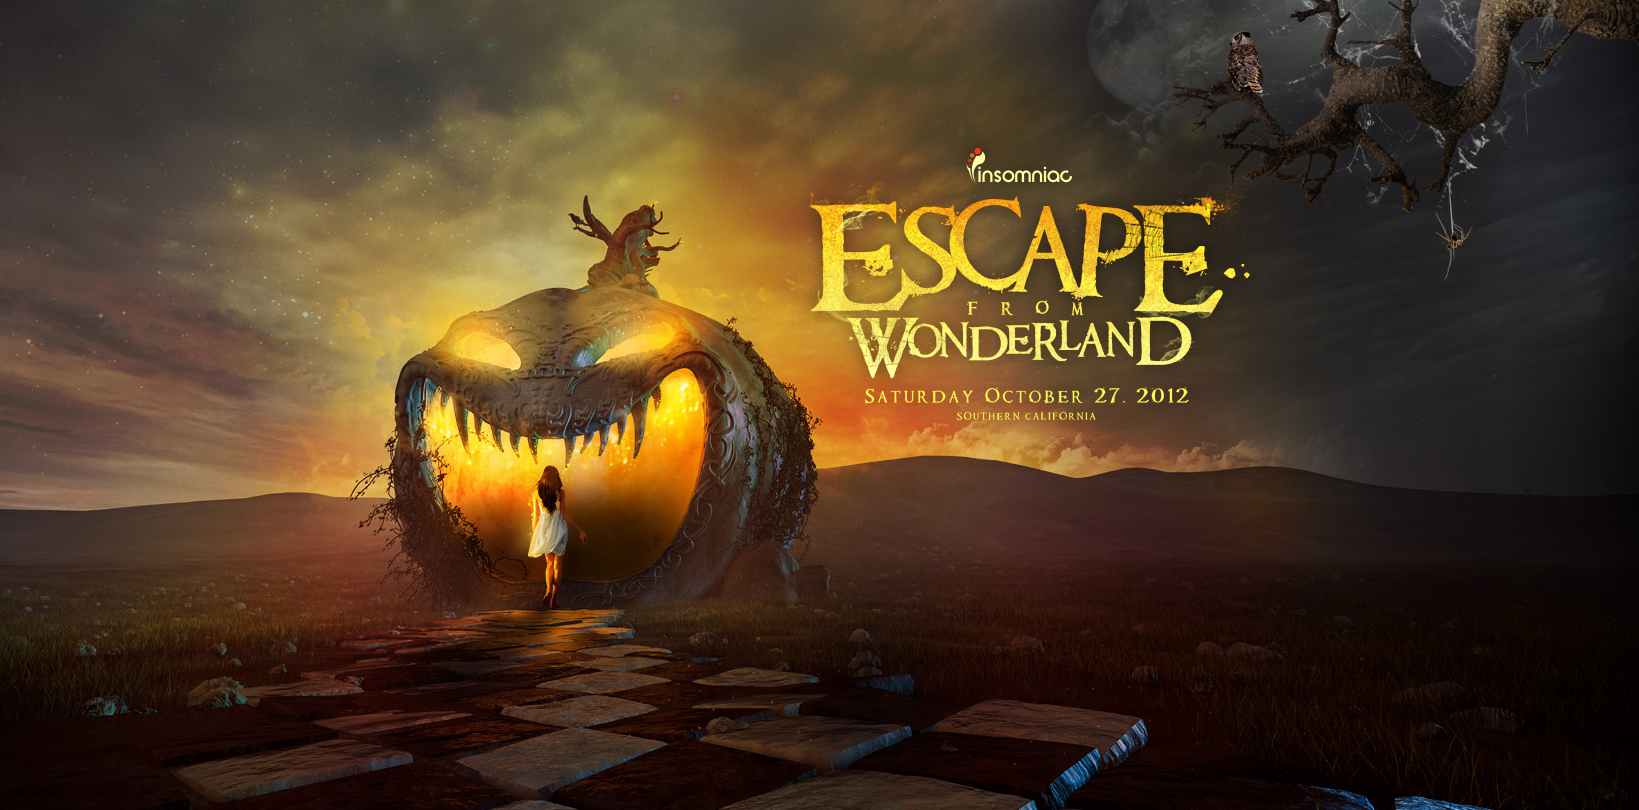 Escape From Wonderland 2012 at The National Orange Show 10-27-12 Tickets